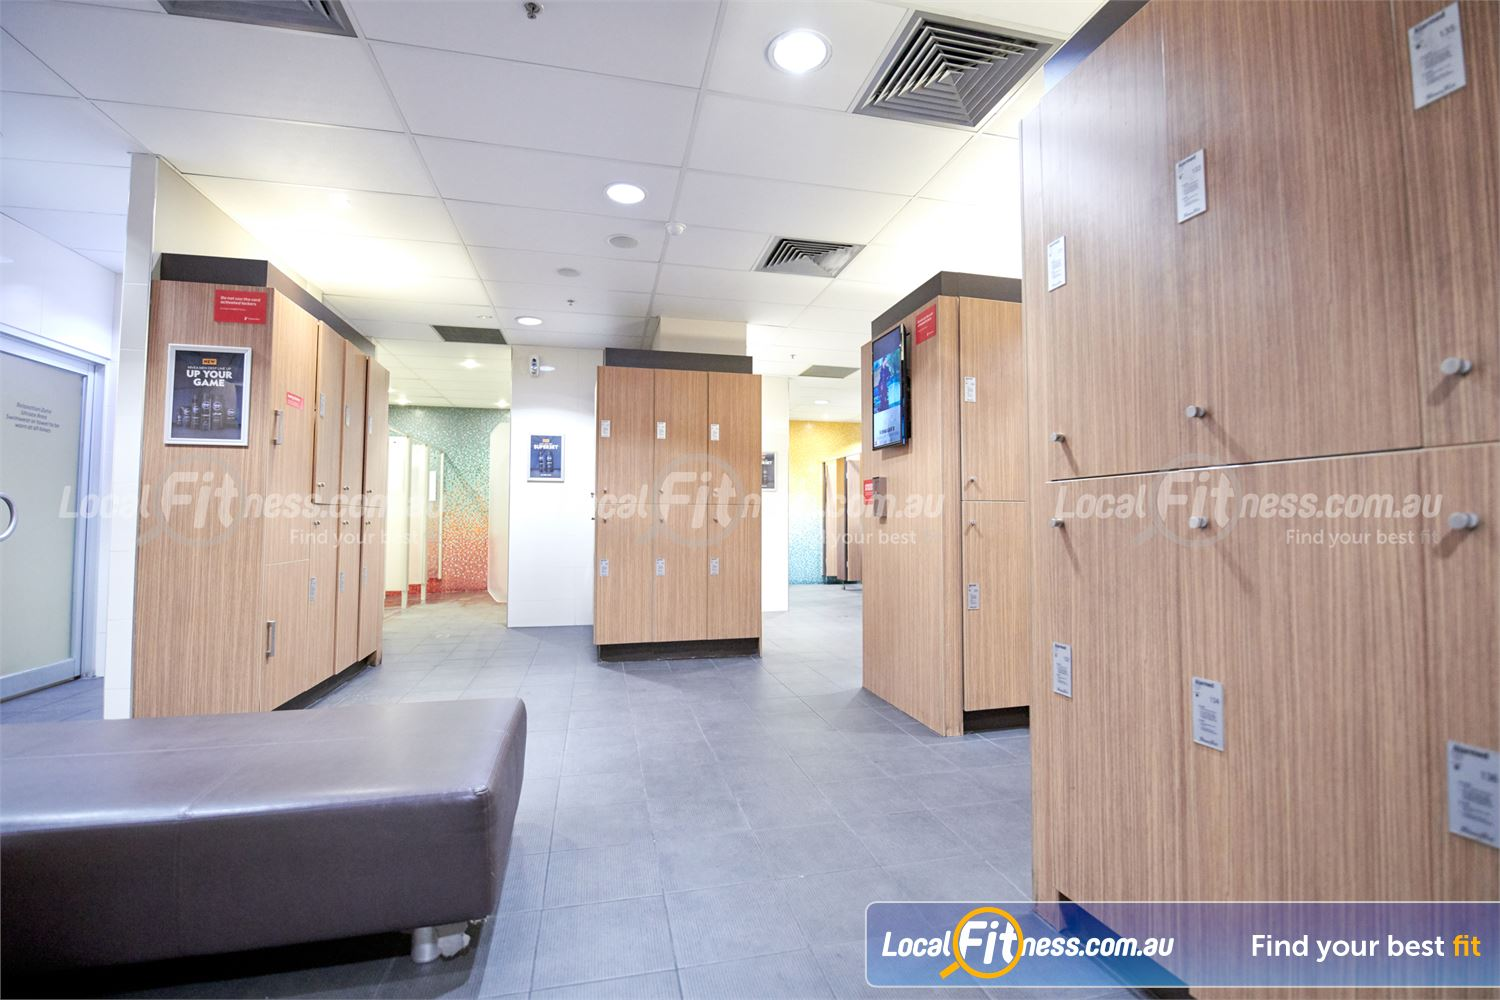 Fitness First Doncaster Luxurious change room facilities inc. steam room and sauna.